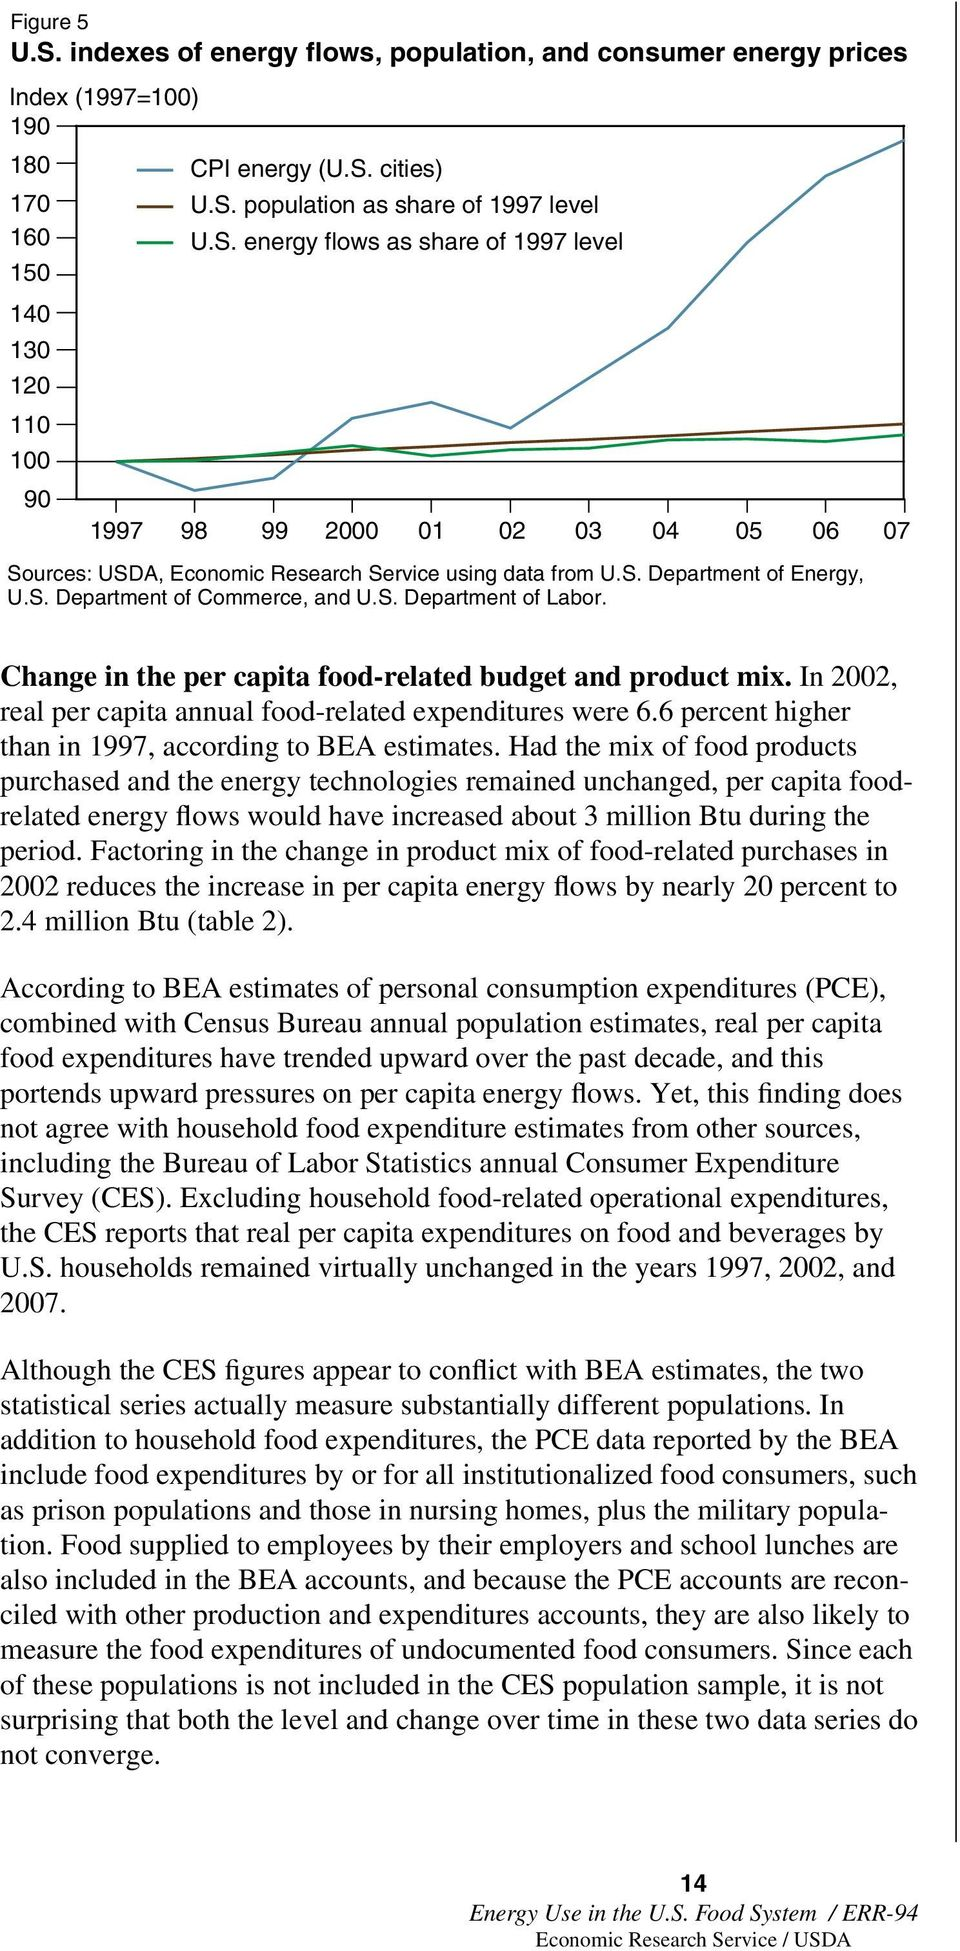 Change in the per capita food-related budget and product mix. In 2002, real per capita annual food-related expenditures were 6.6 percent higher than in 1997, according to BEA estimates.